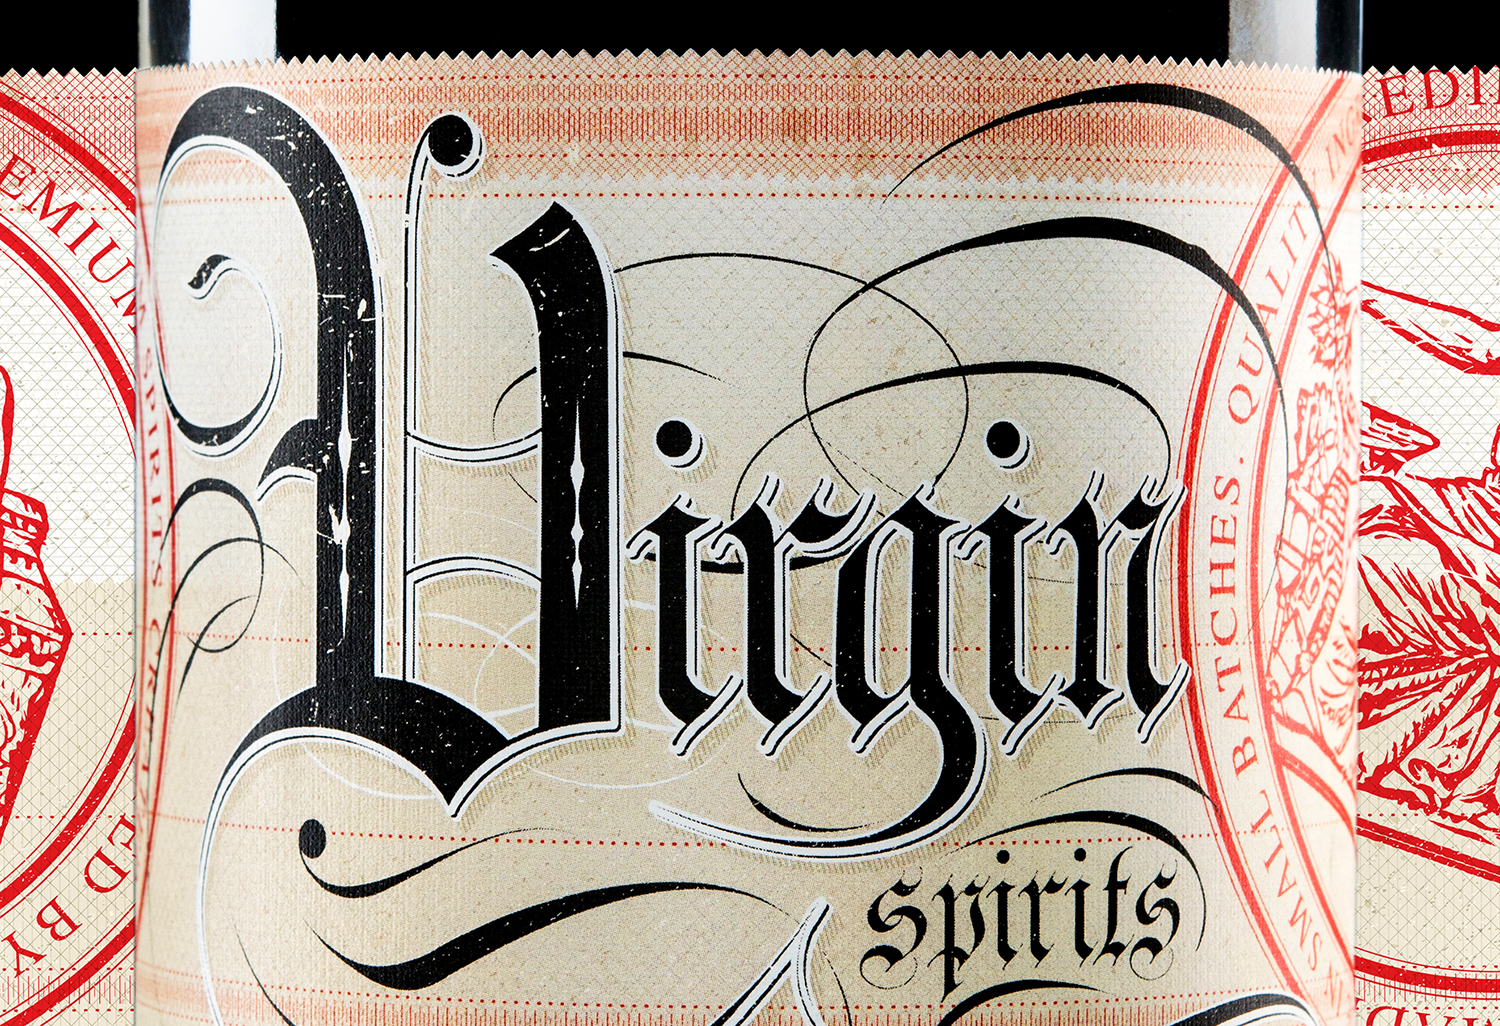 Packaging Design for Dubh Glas Distillery's white whiskey, Virgin Spirits